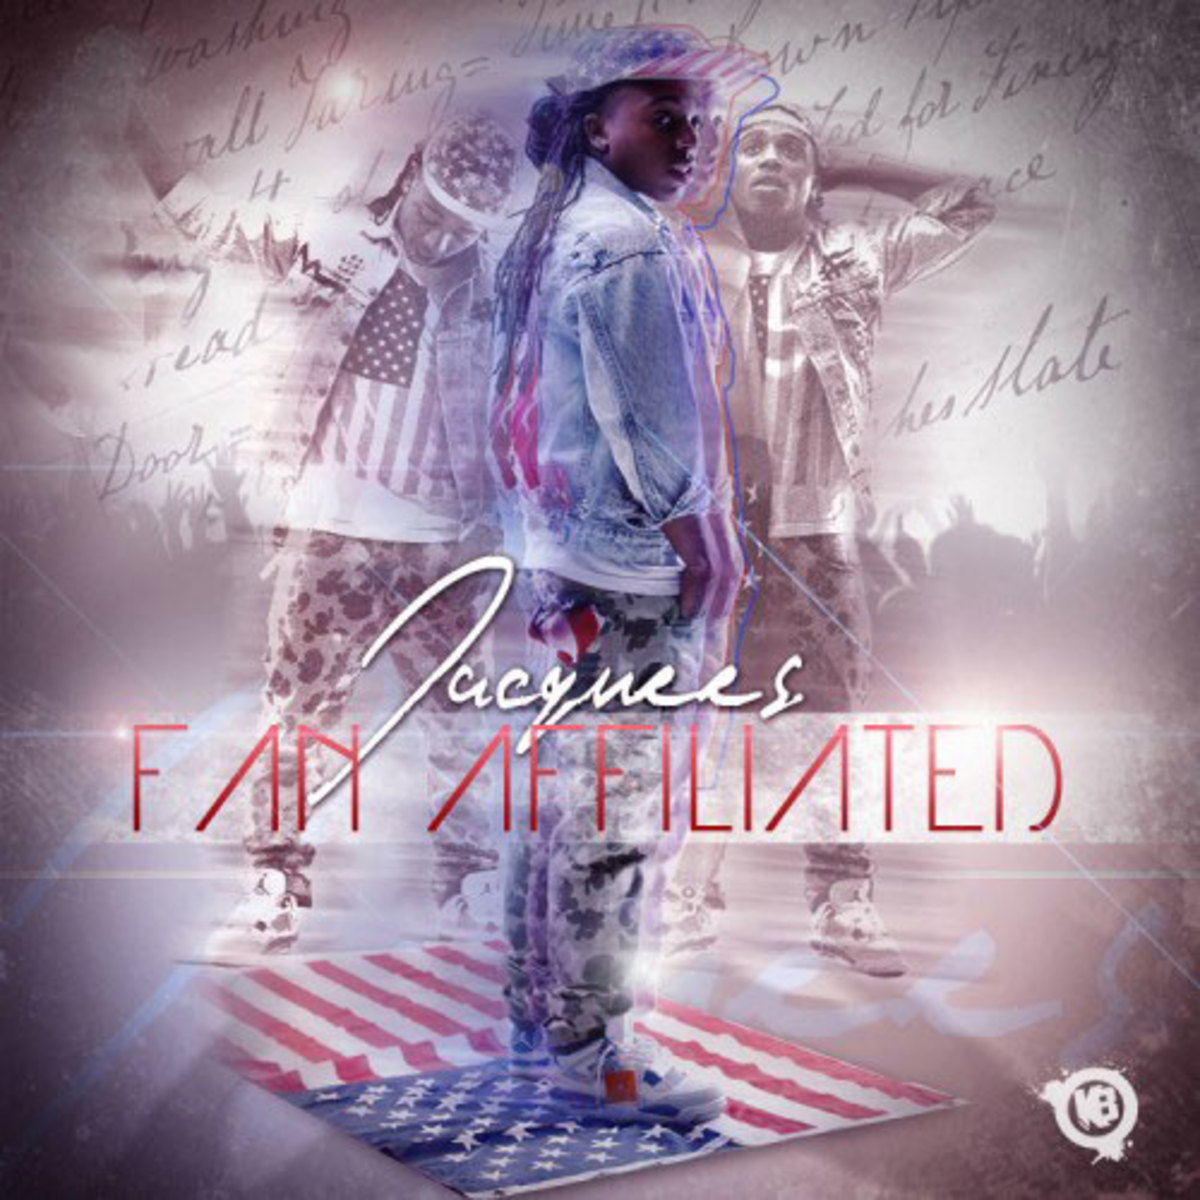 jacquees-fana.jpg